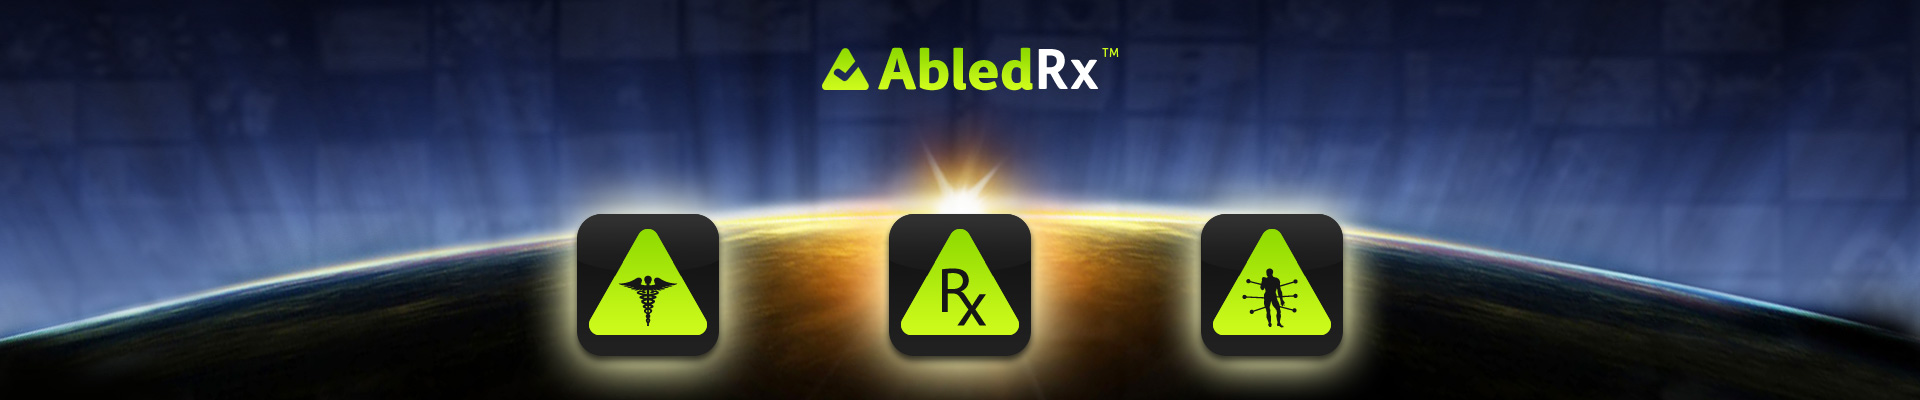 AbledRx banner shows three icons comprised of the ABled gradient green rounded rectangle with the text Rx in the center icon flanked by medical icons over the background of the sun rising over the curve of the Earth's horizon.